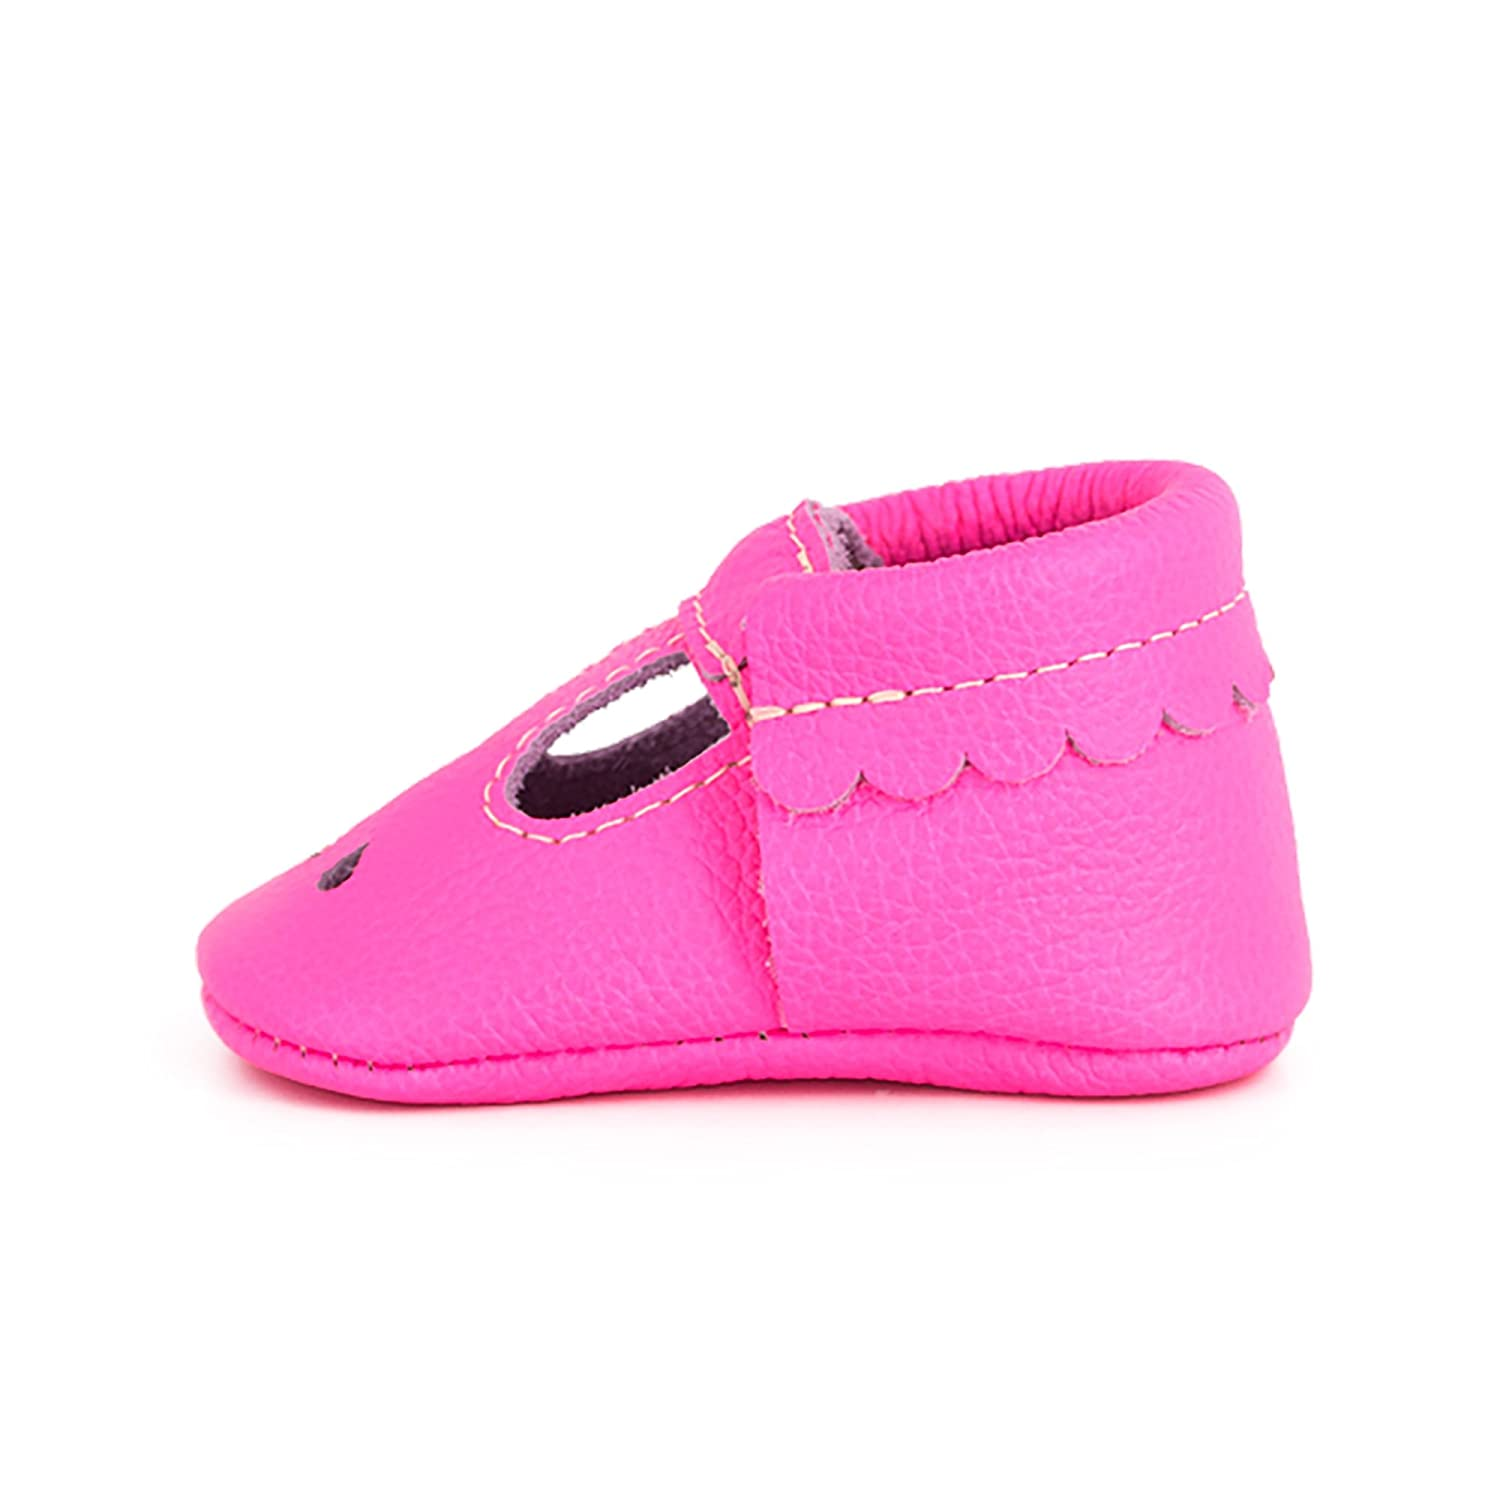 Freshly Picked Mary Jane Soft Sole Baby Moccasins